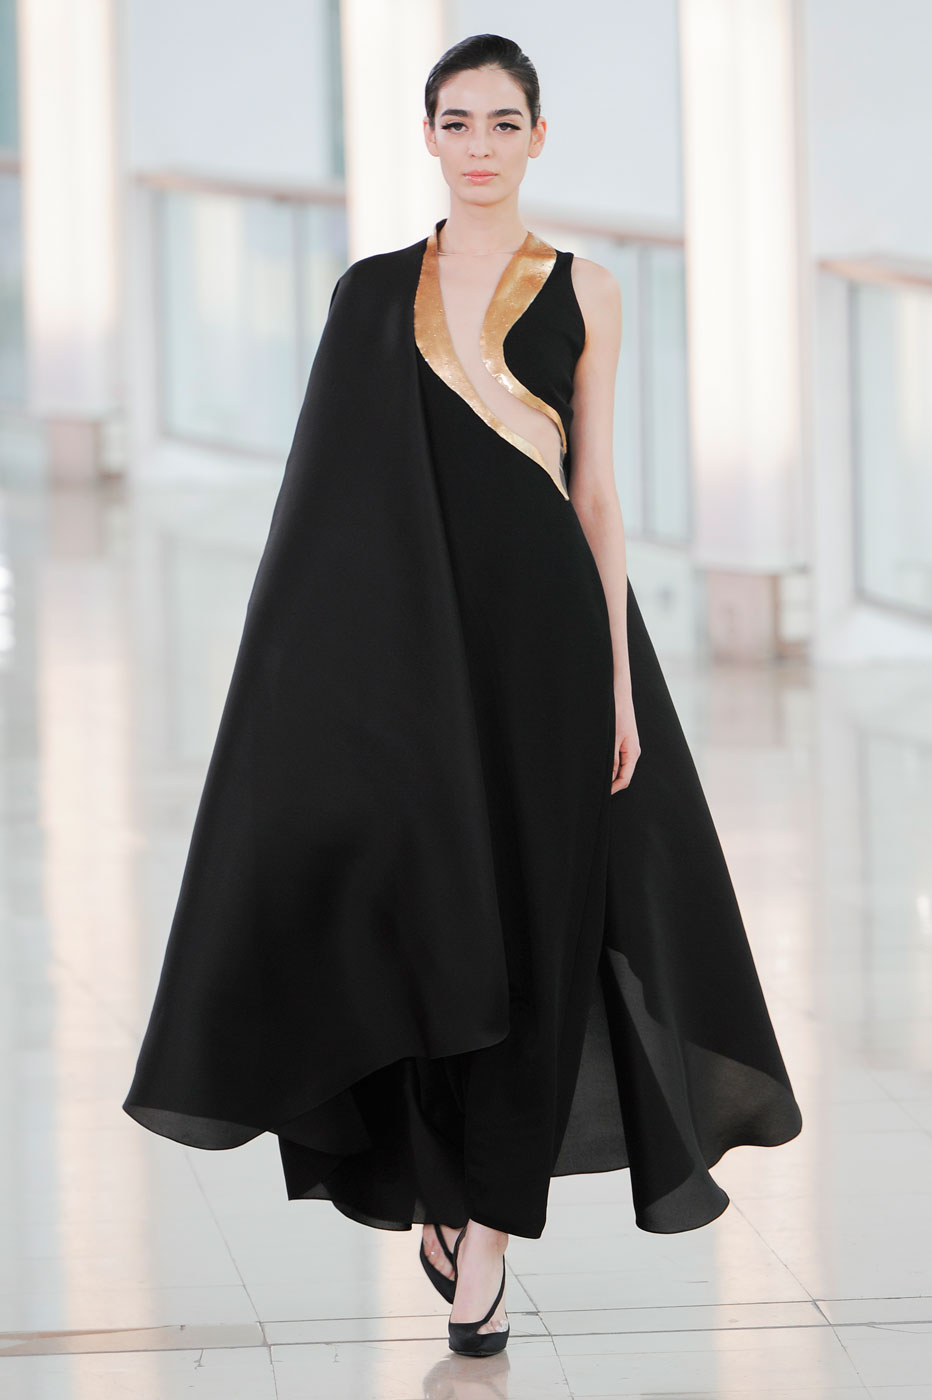 stephane-rolland-fashion-runway-show-haute-couture-paris-spring-2015-the-impression-42